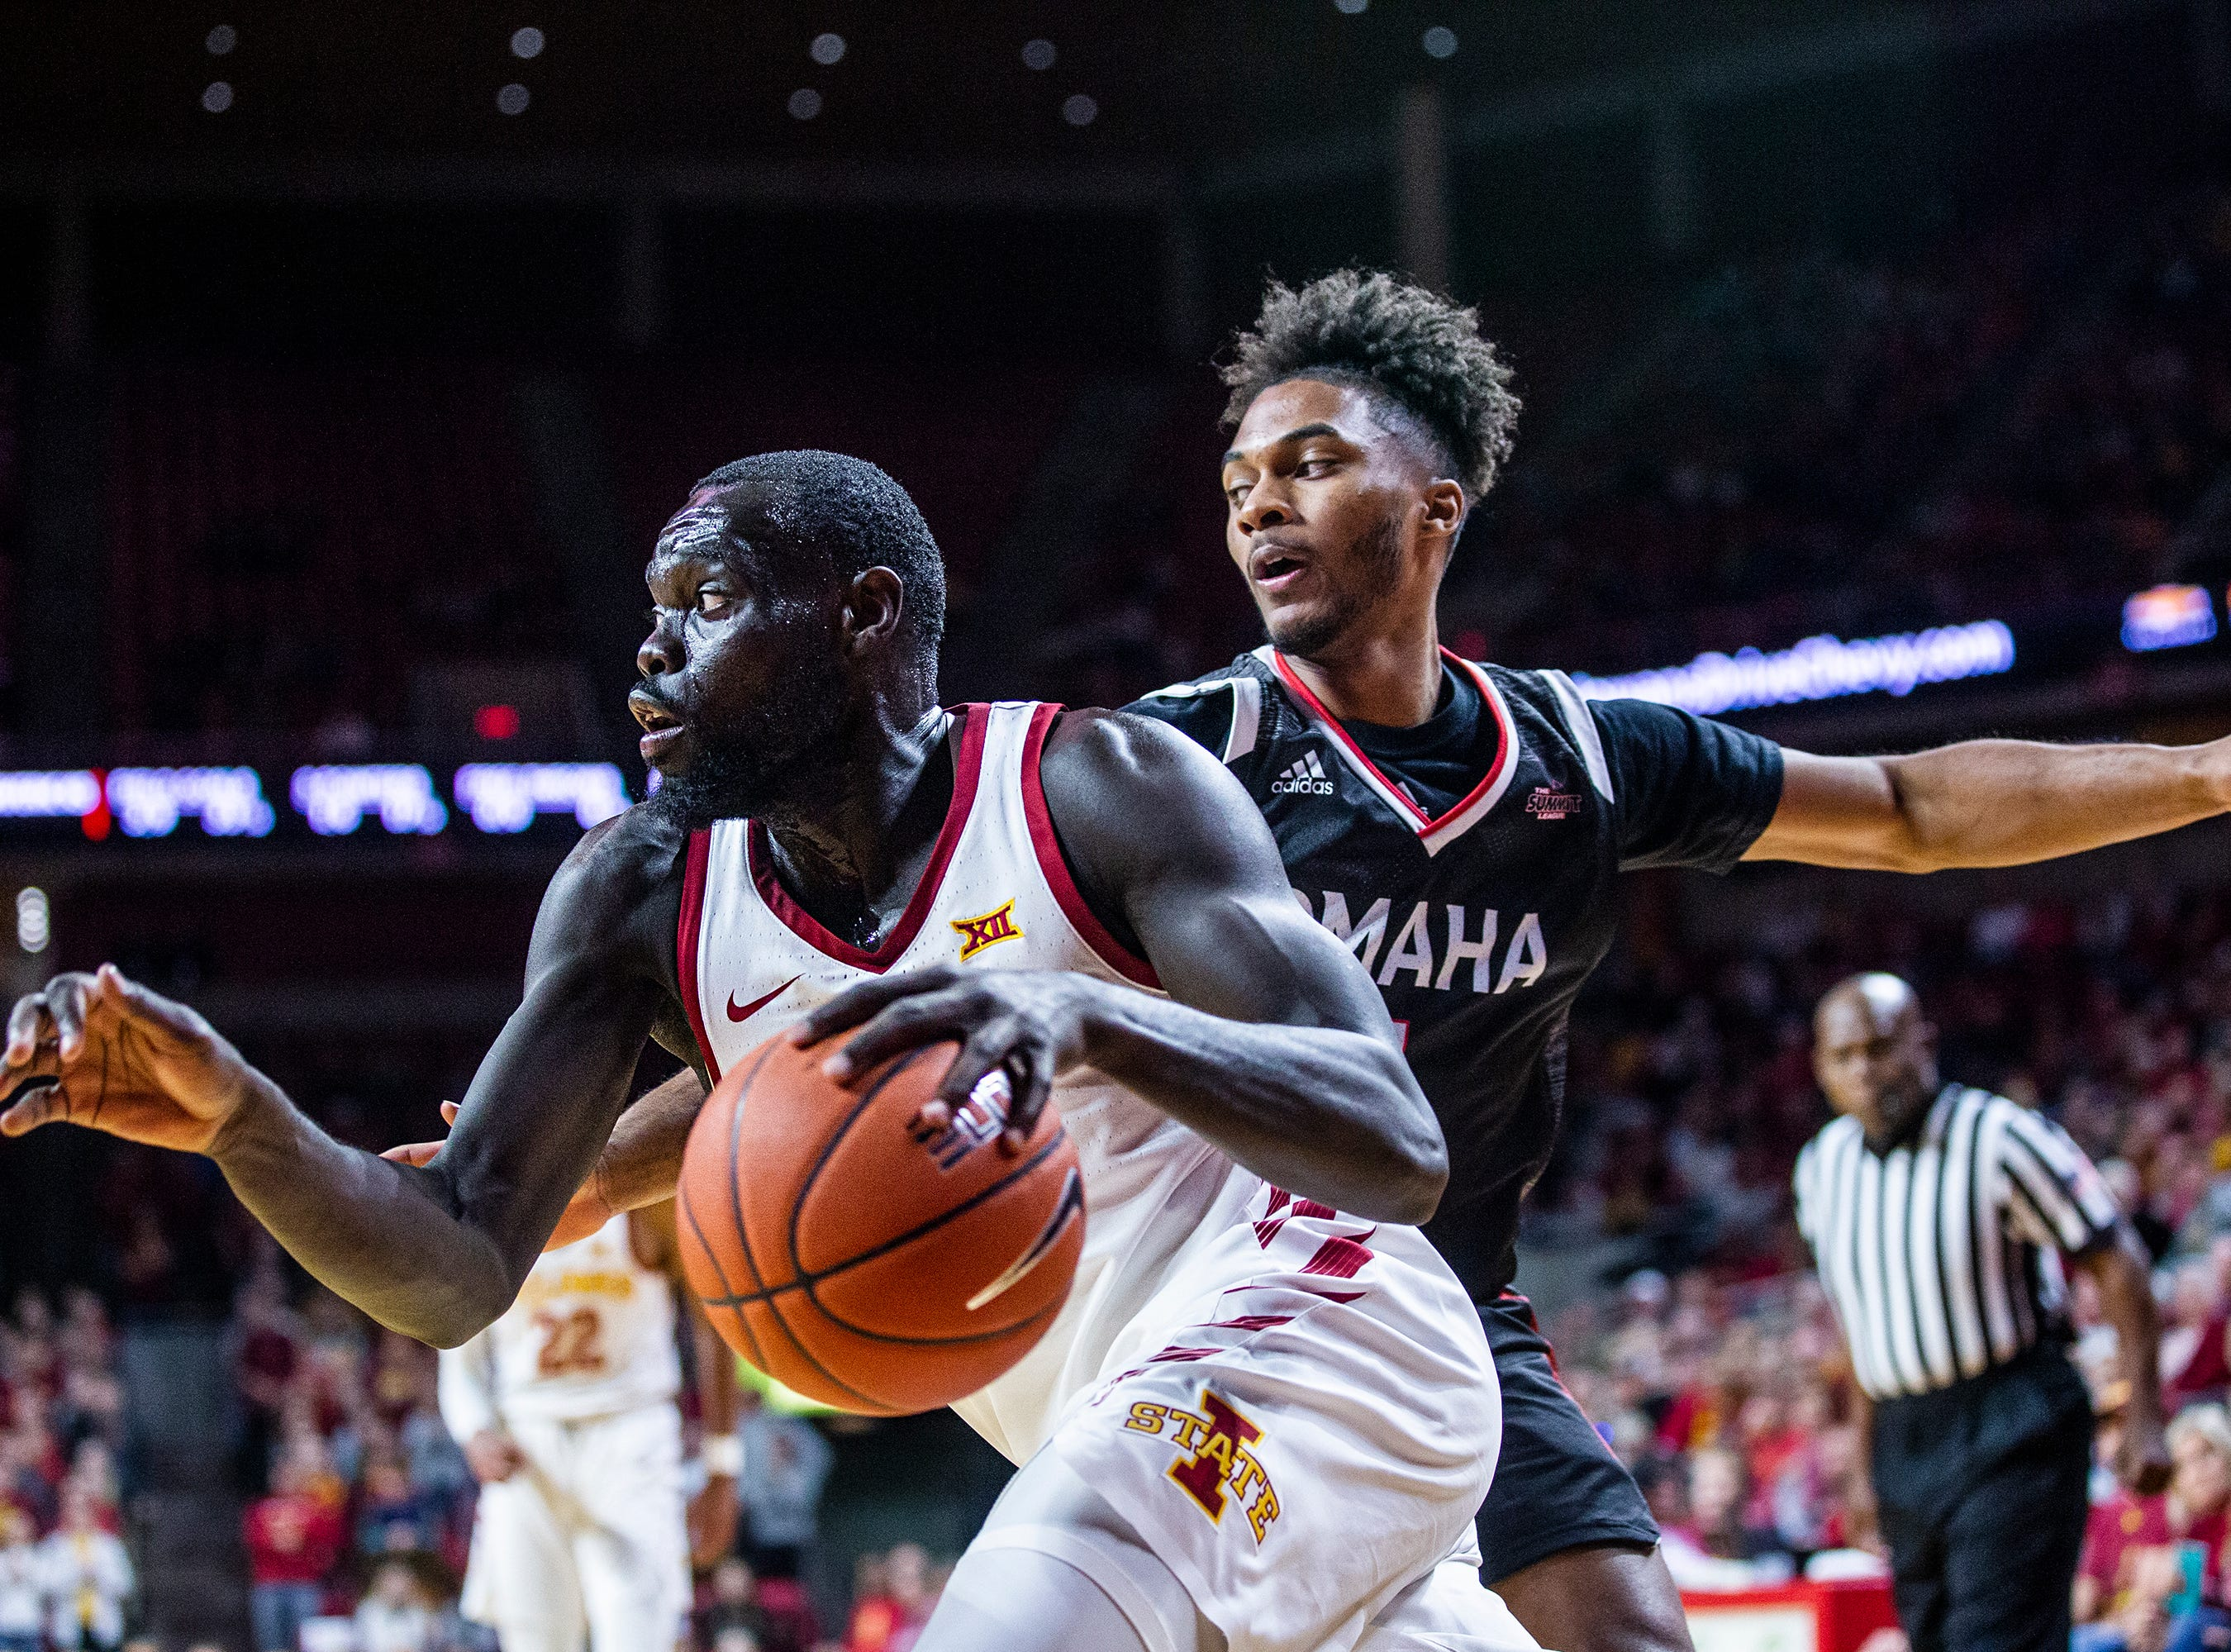 Iowa State's Marial Shayok drives toward the hoop during the Iowa State men's basketball game against Omaha on Monday, Nov. 26, 2018, at Hilton Coliseum, in Ames.